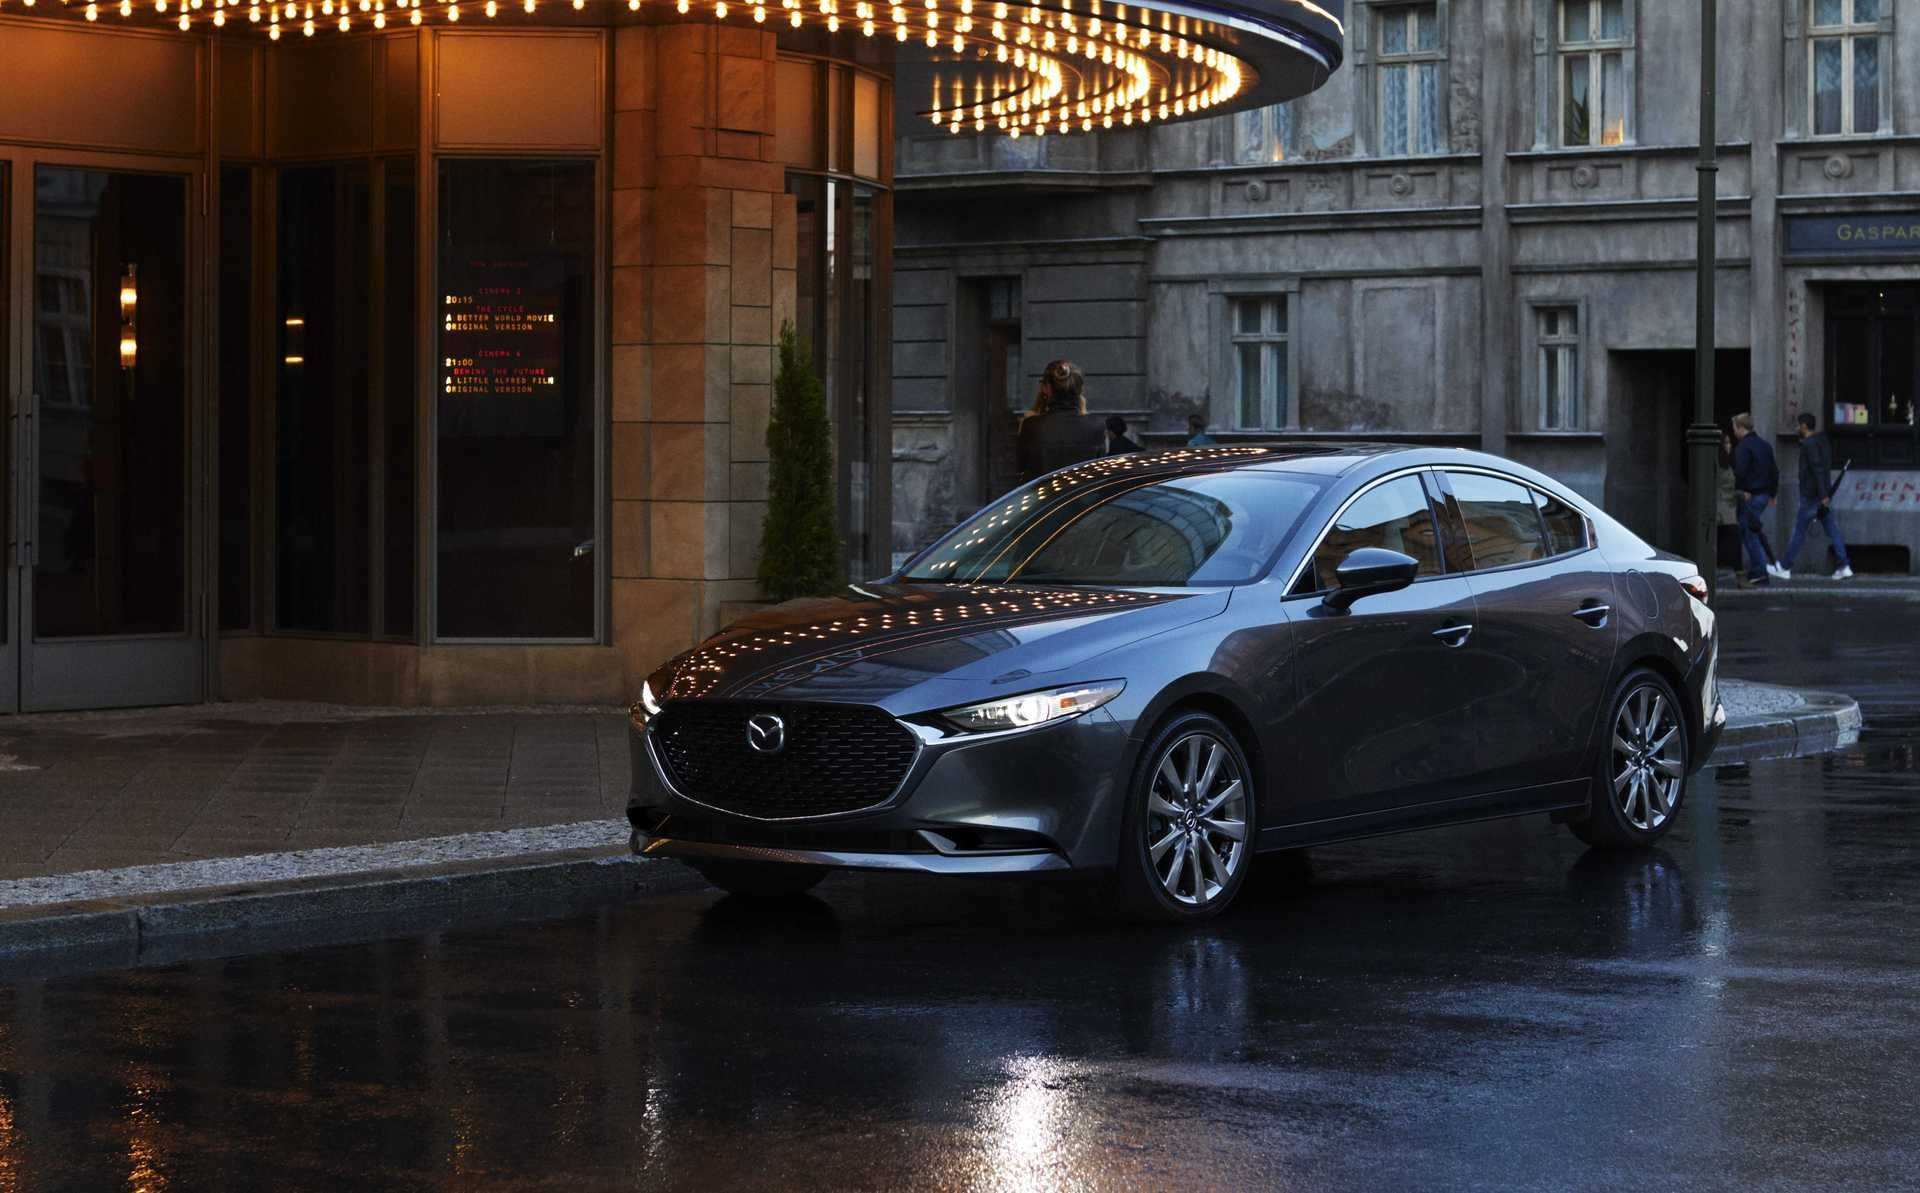 14 New Xe Mazda 3 2019 Research New